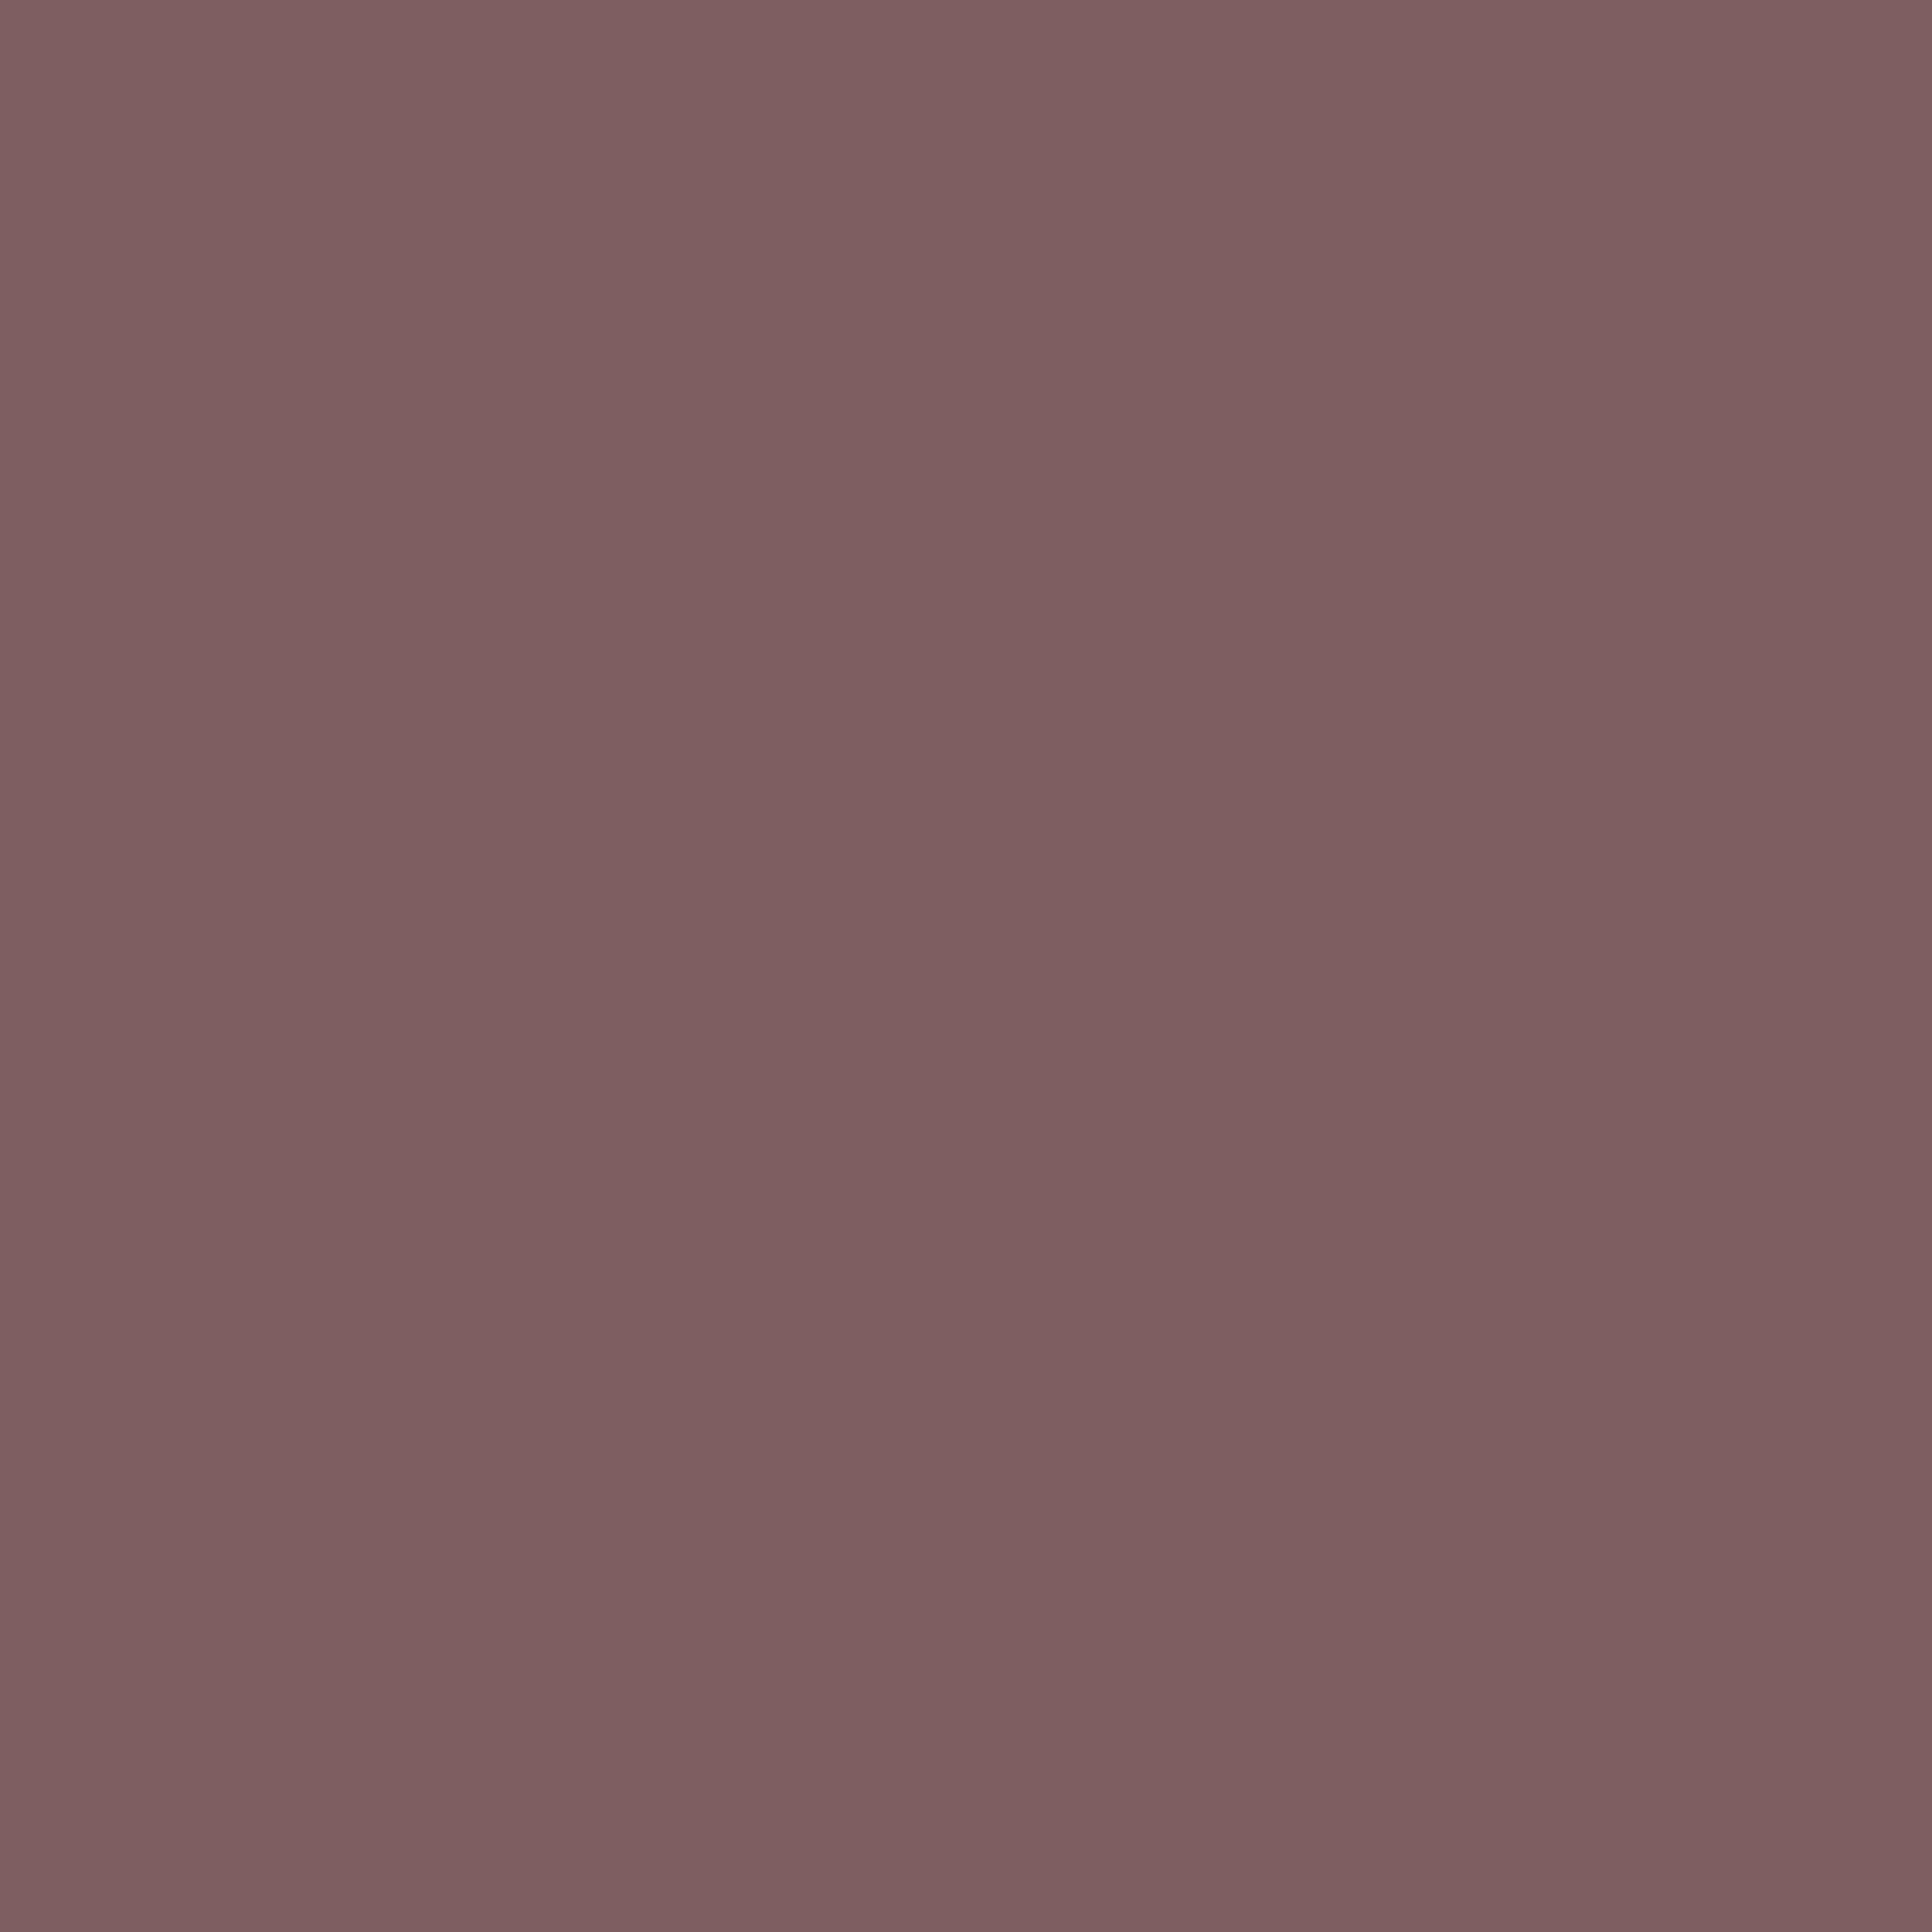 2732x2732 Deep Taupe Solid Color Background